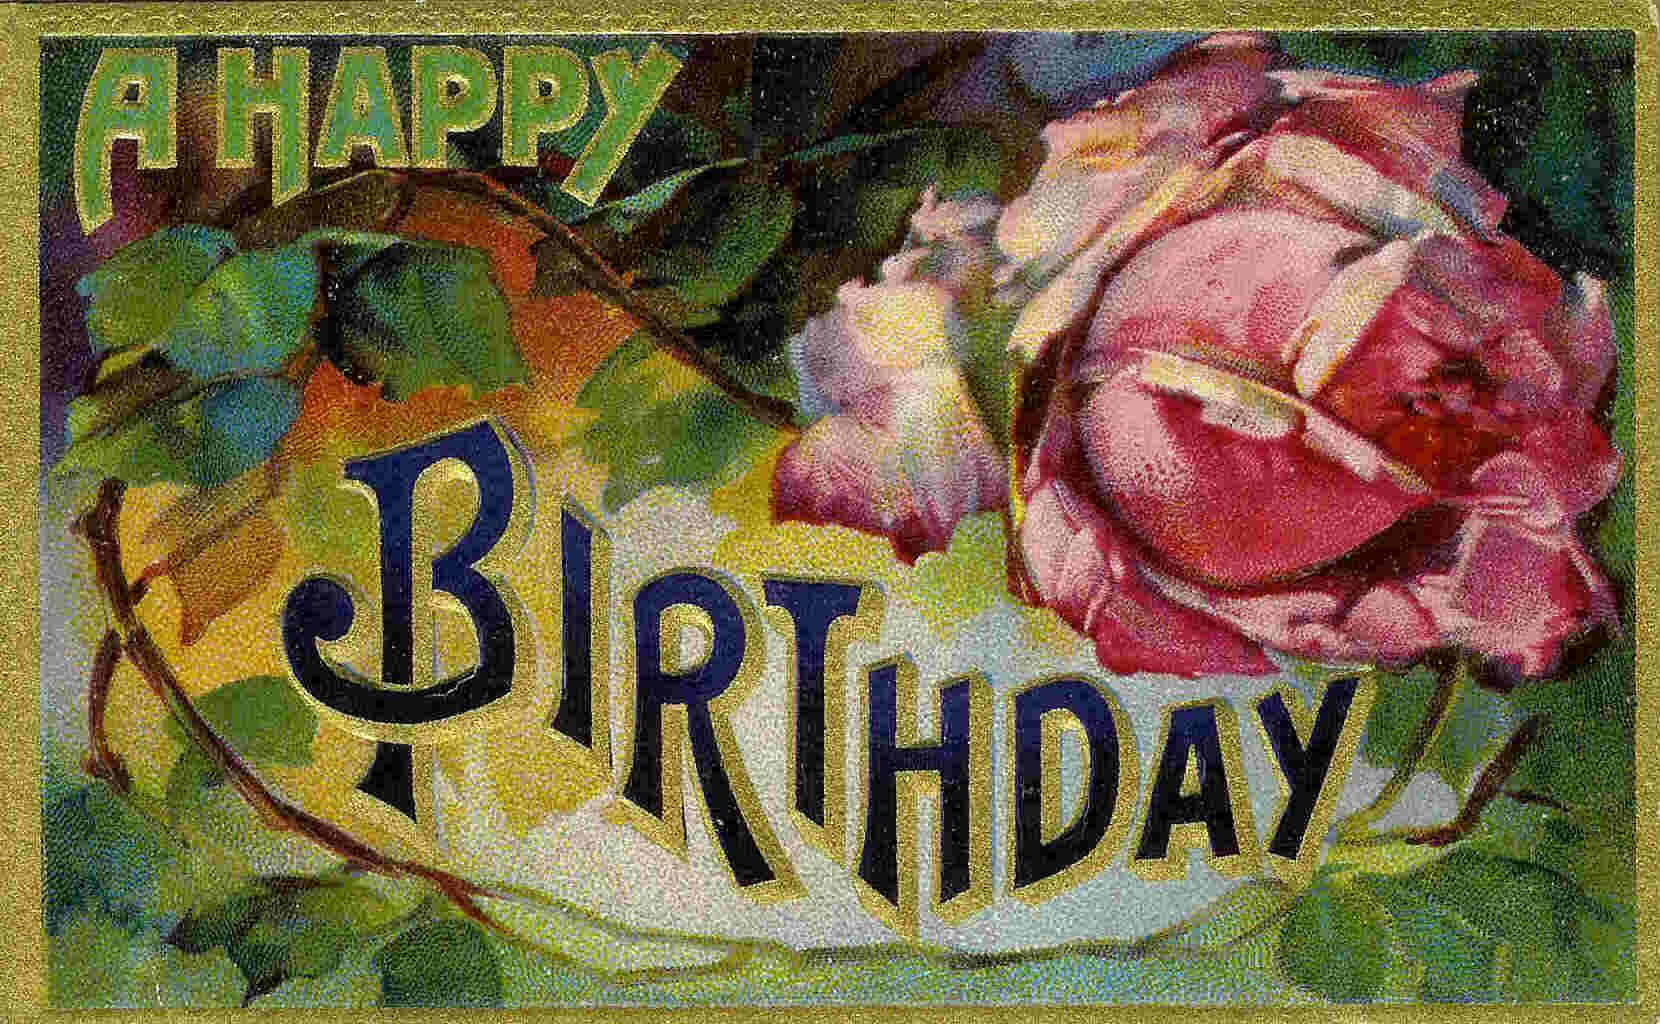 This Beautiful Vintage Happy Birthday Card Is Available For Free Download From The Collection Of Amy